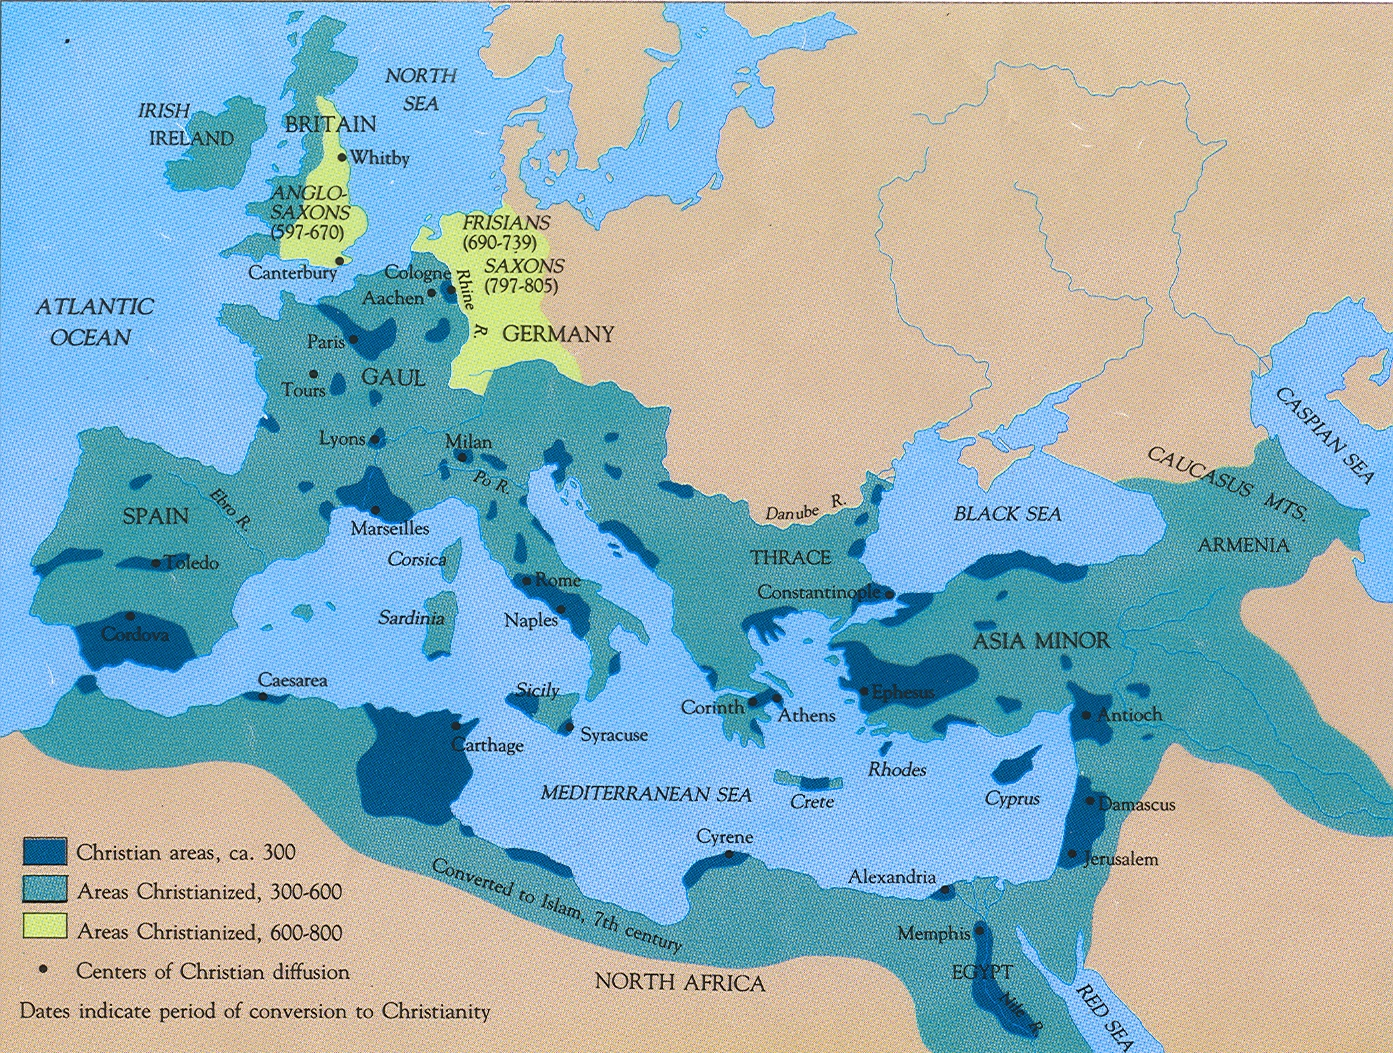 How Christianity emerged and spread during the early Roman Empire